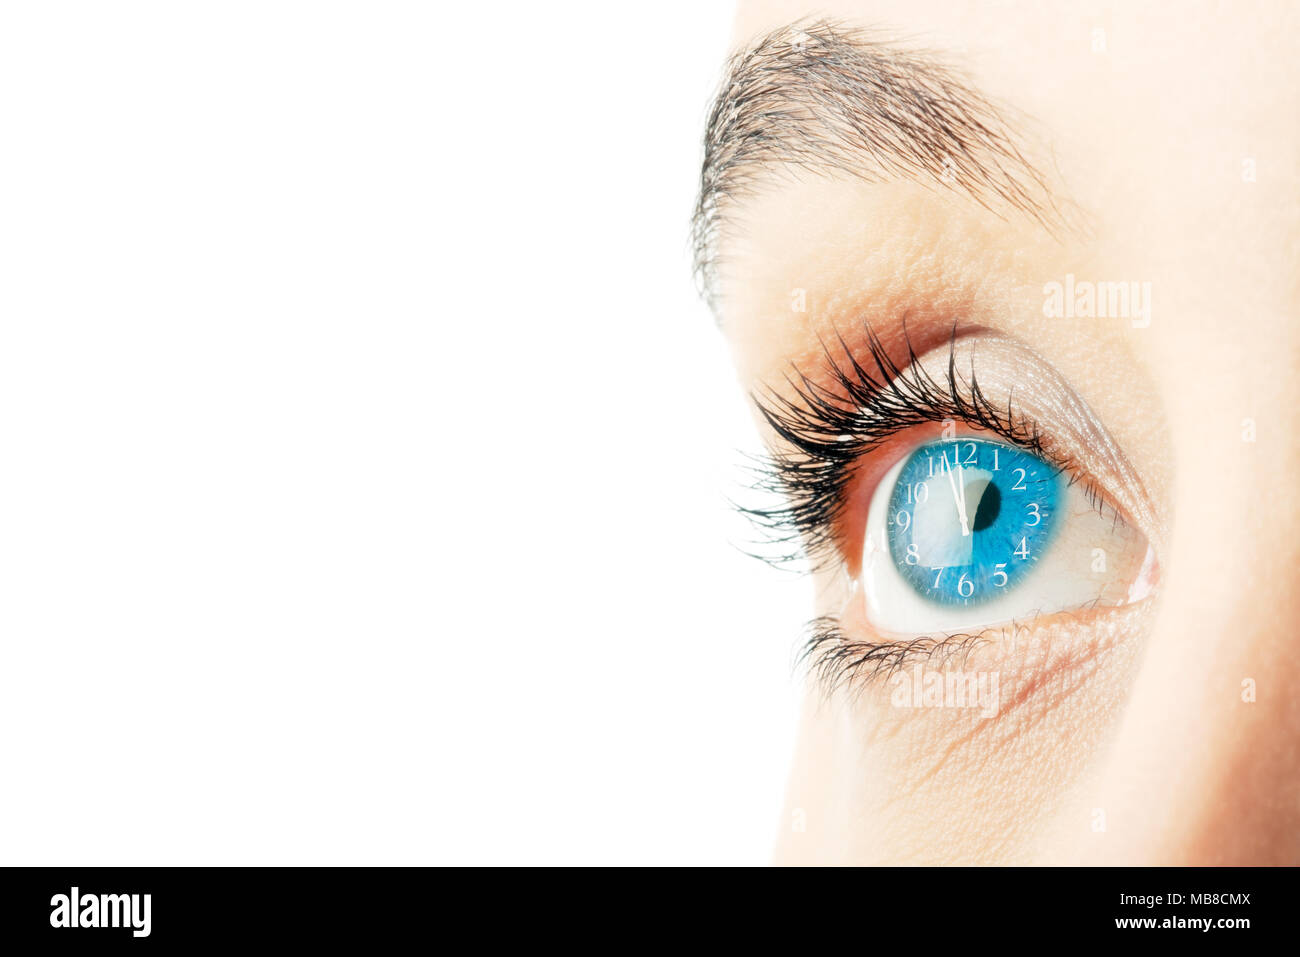 a91c9a415dc5 Close up of woman's eye with clock face superimposed - Stock Image